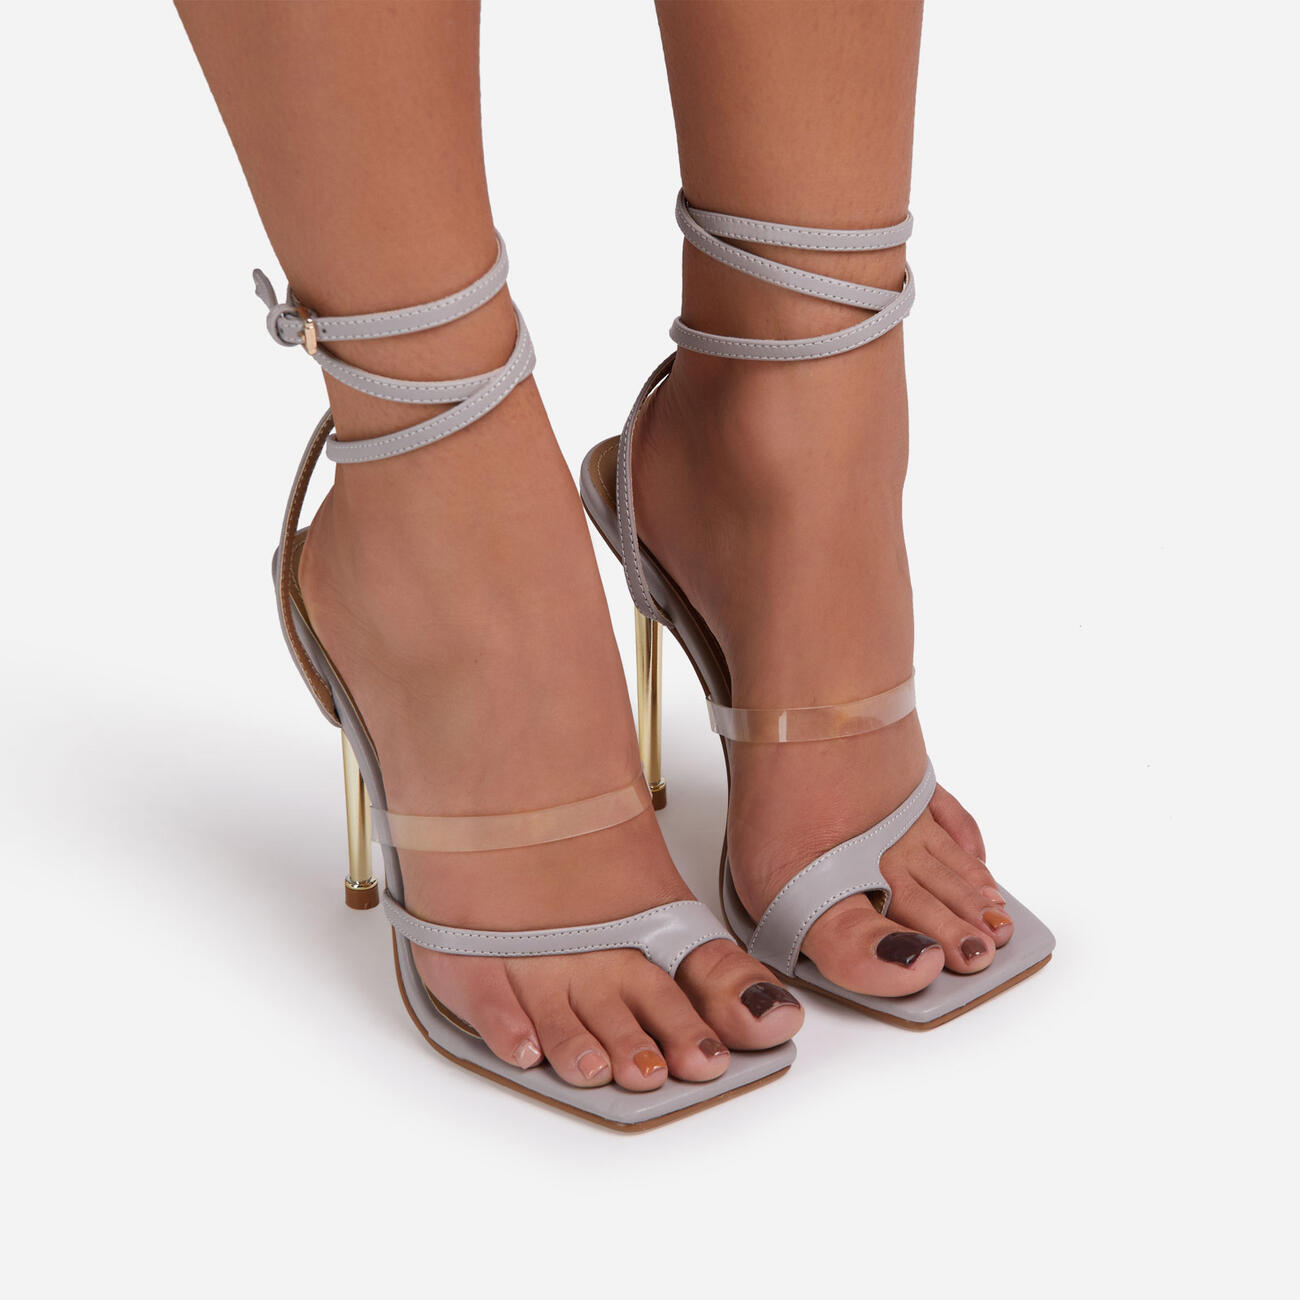 Blaze Lace Up Clear Perspex Square Toe Metallic Heel Grey Faux Leather Image 3